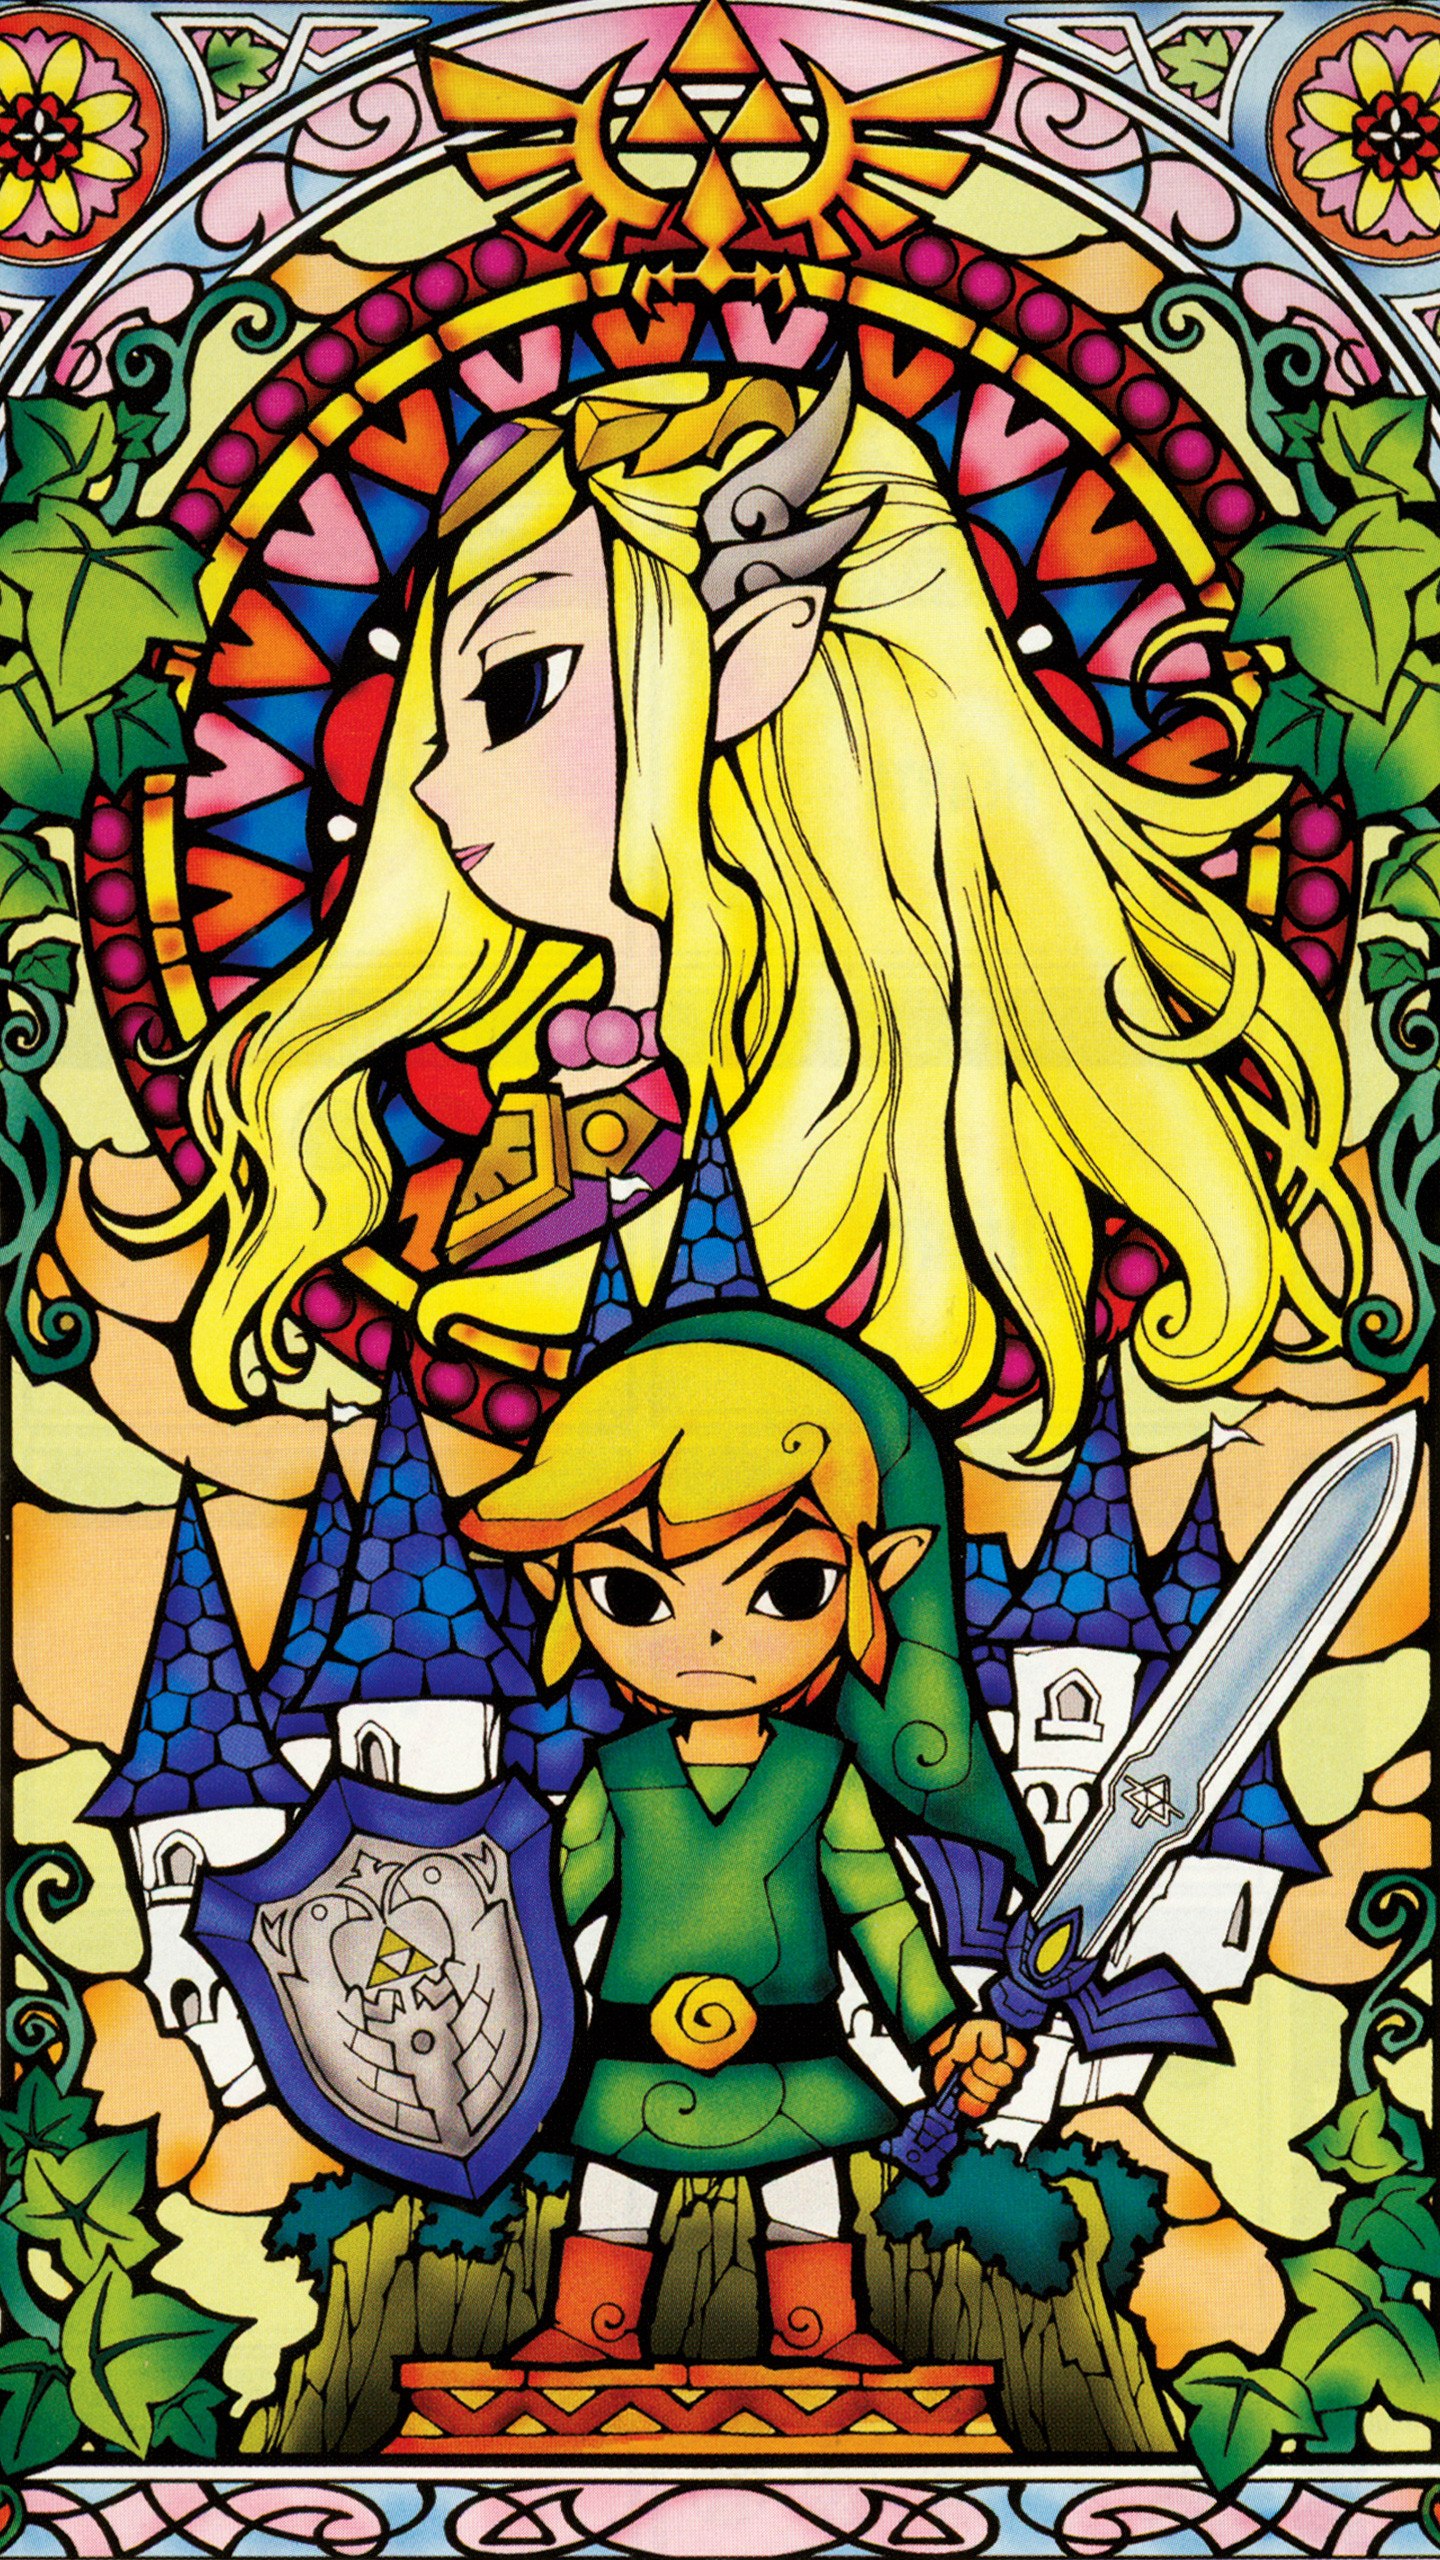 1440x2560 Mobile Phone The legend of zelda Wallpapers HD Desktop ×